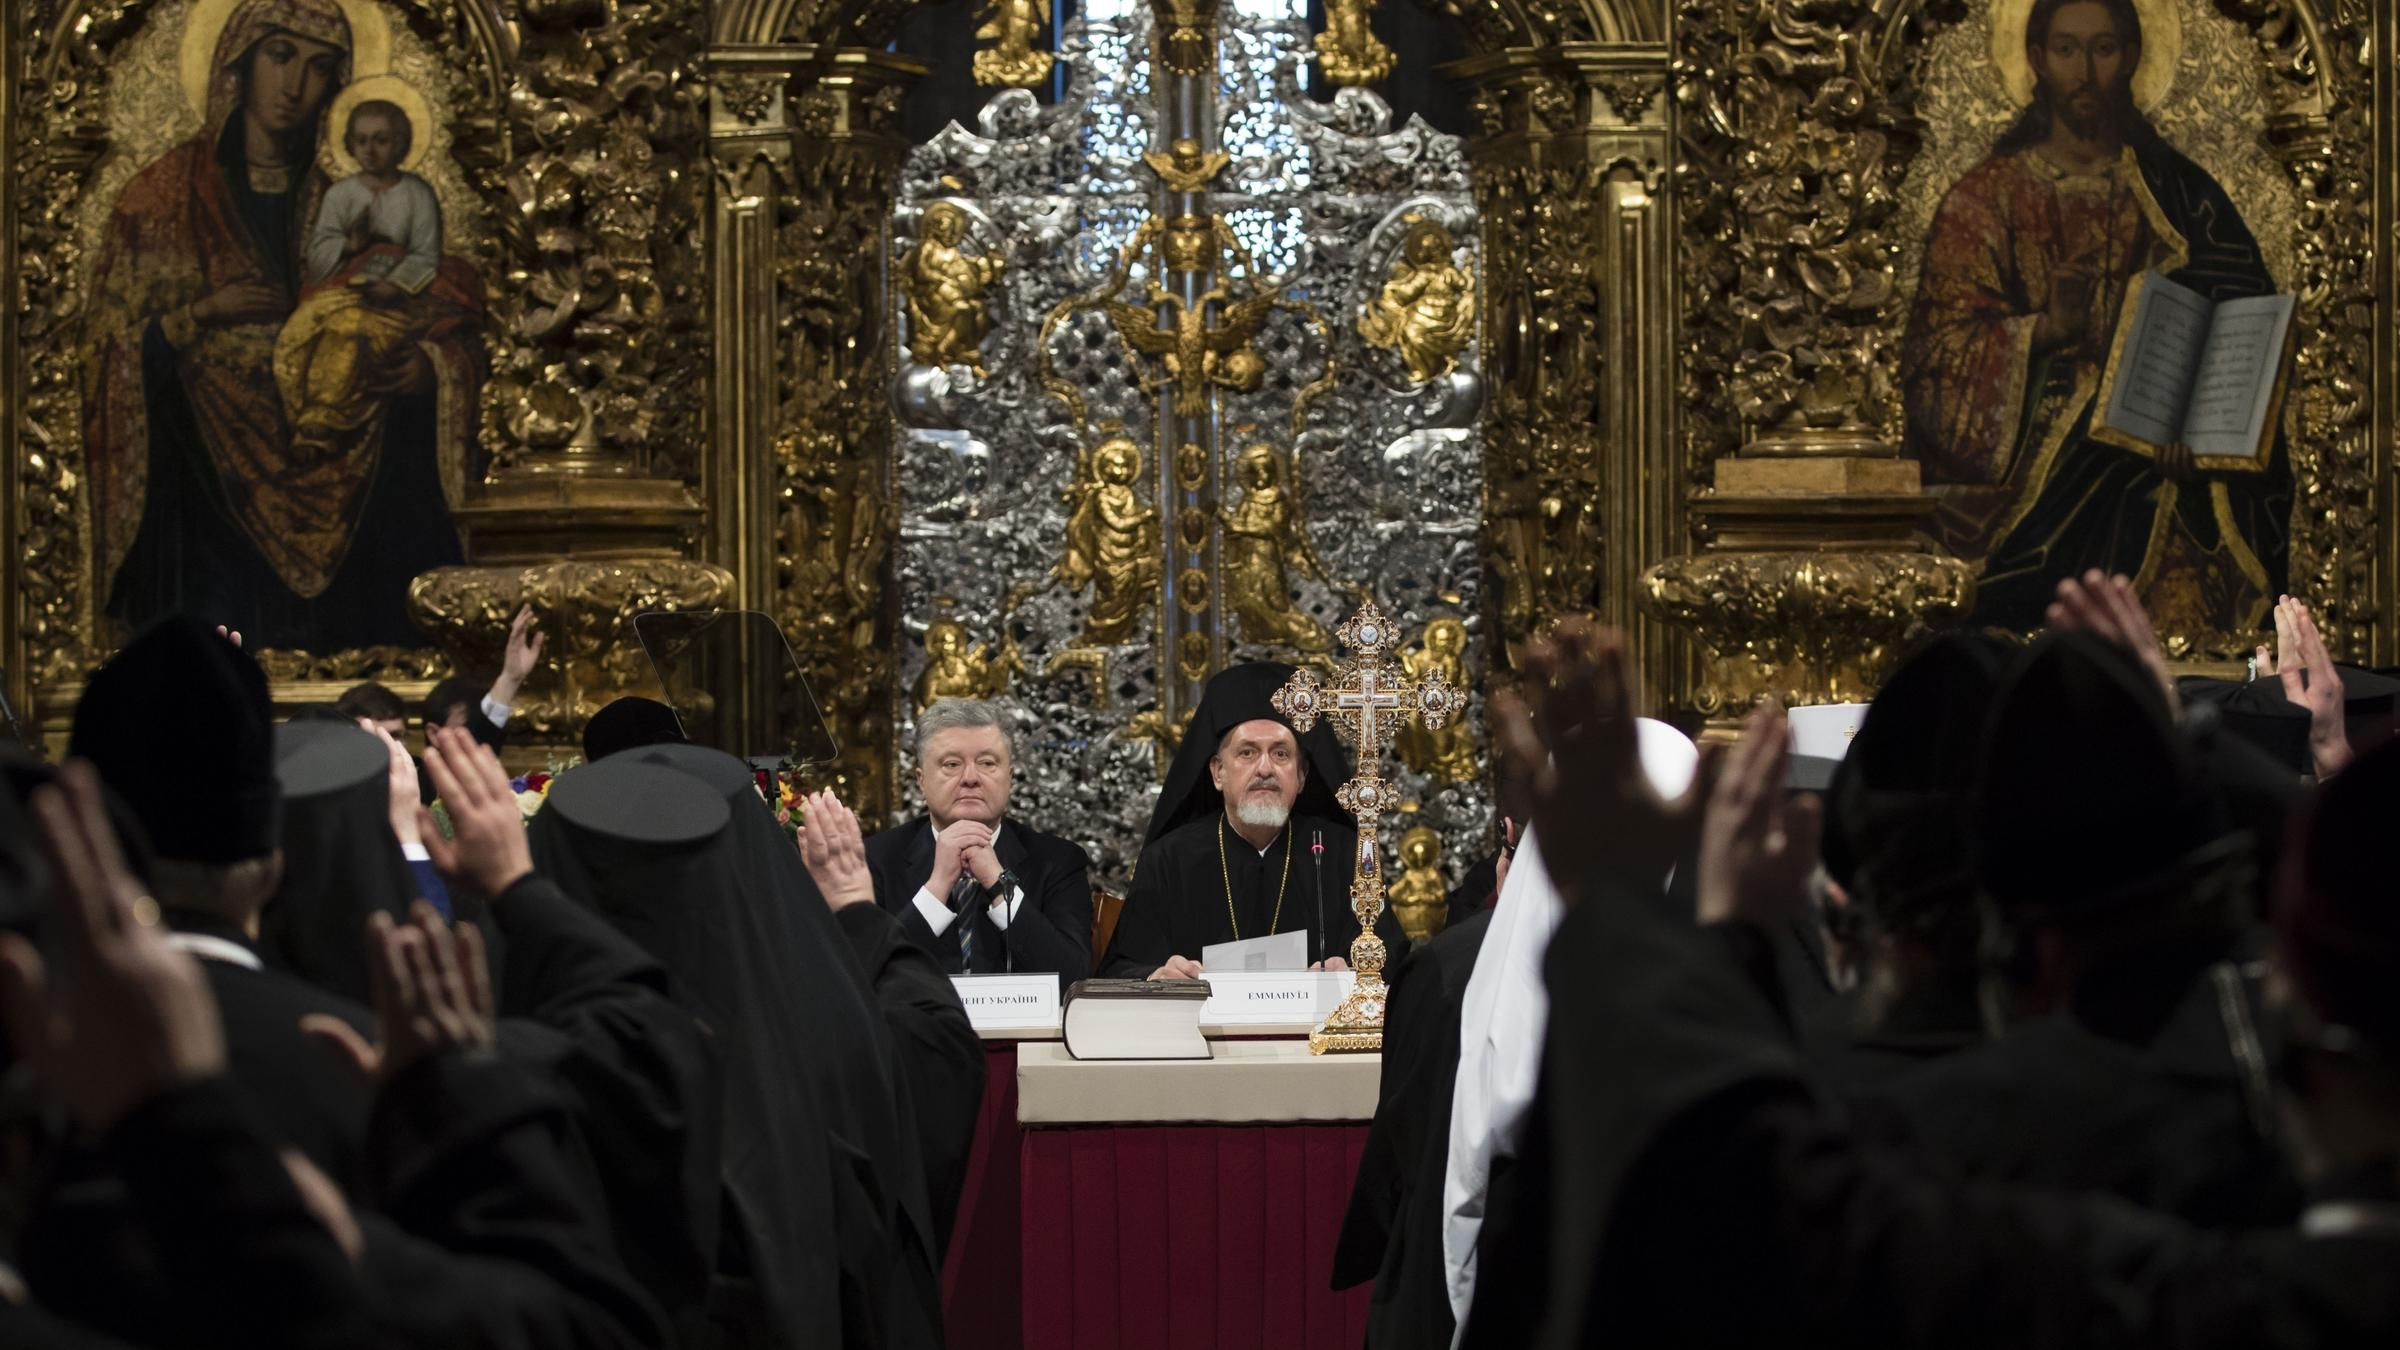 Ukraine creates new Orthodox church independent from Russian Federation